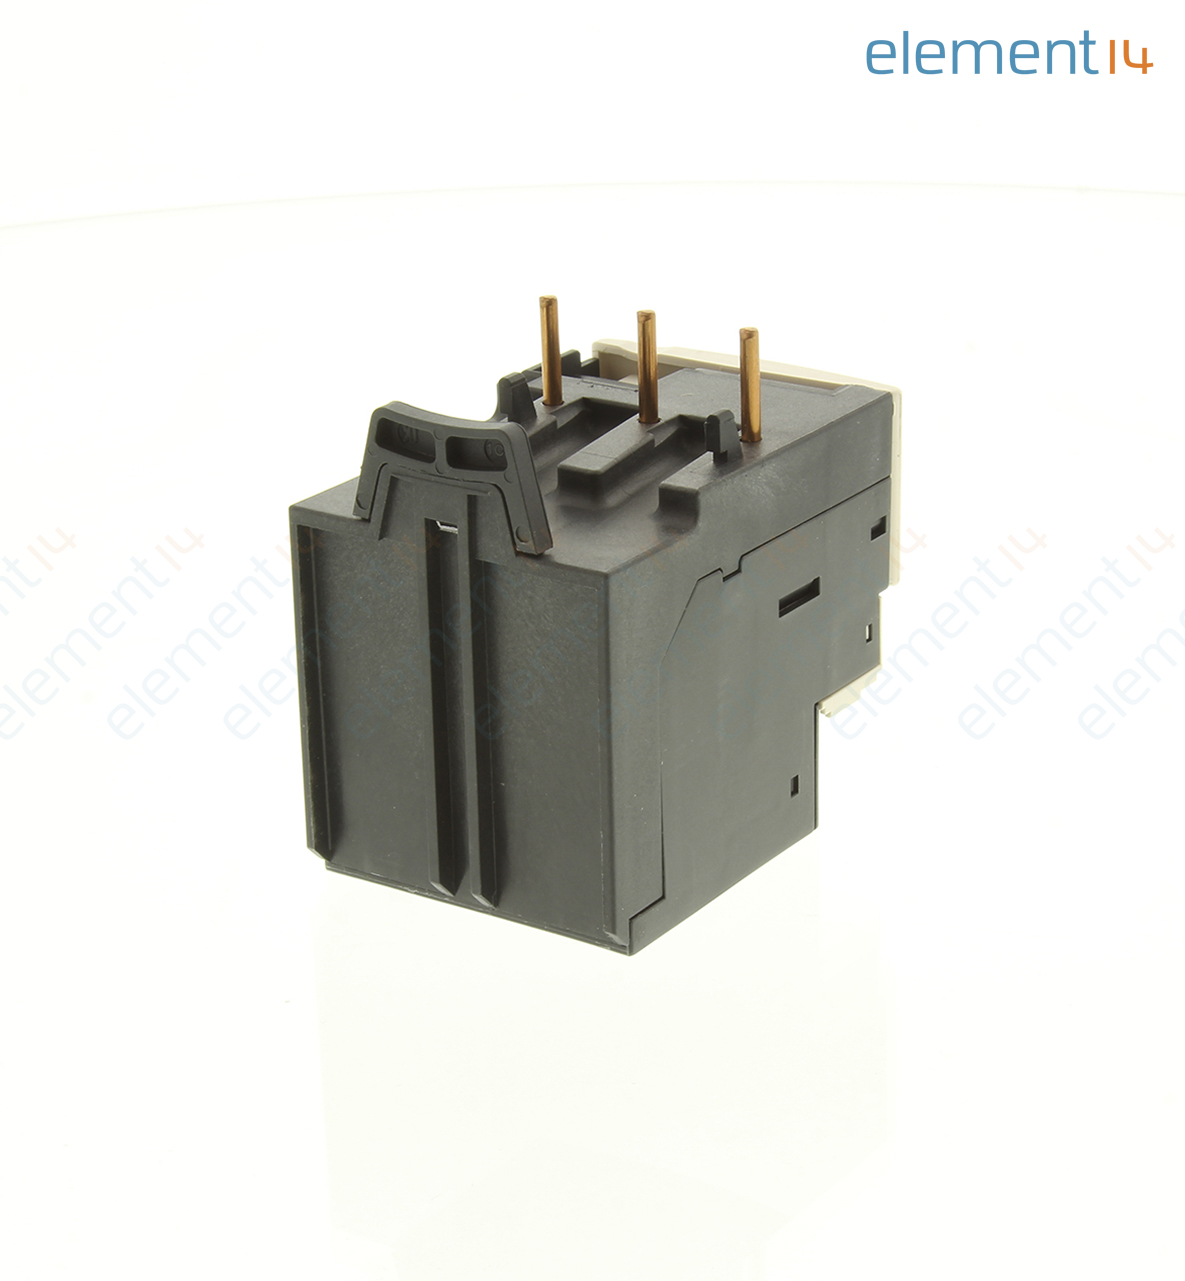 Lrd22 Schneider Electric Overload Relay Tesys D Iec 16 A Electrical Wiring Diagram Also Mag Ic Contactor With Add To Compare